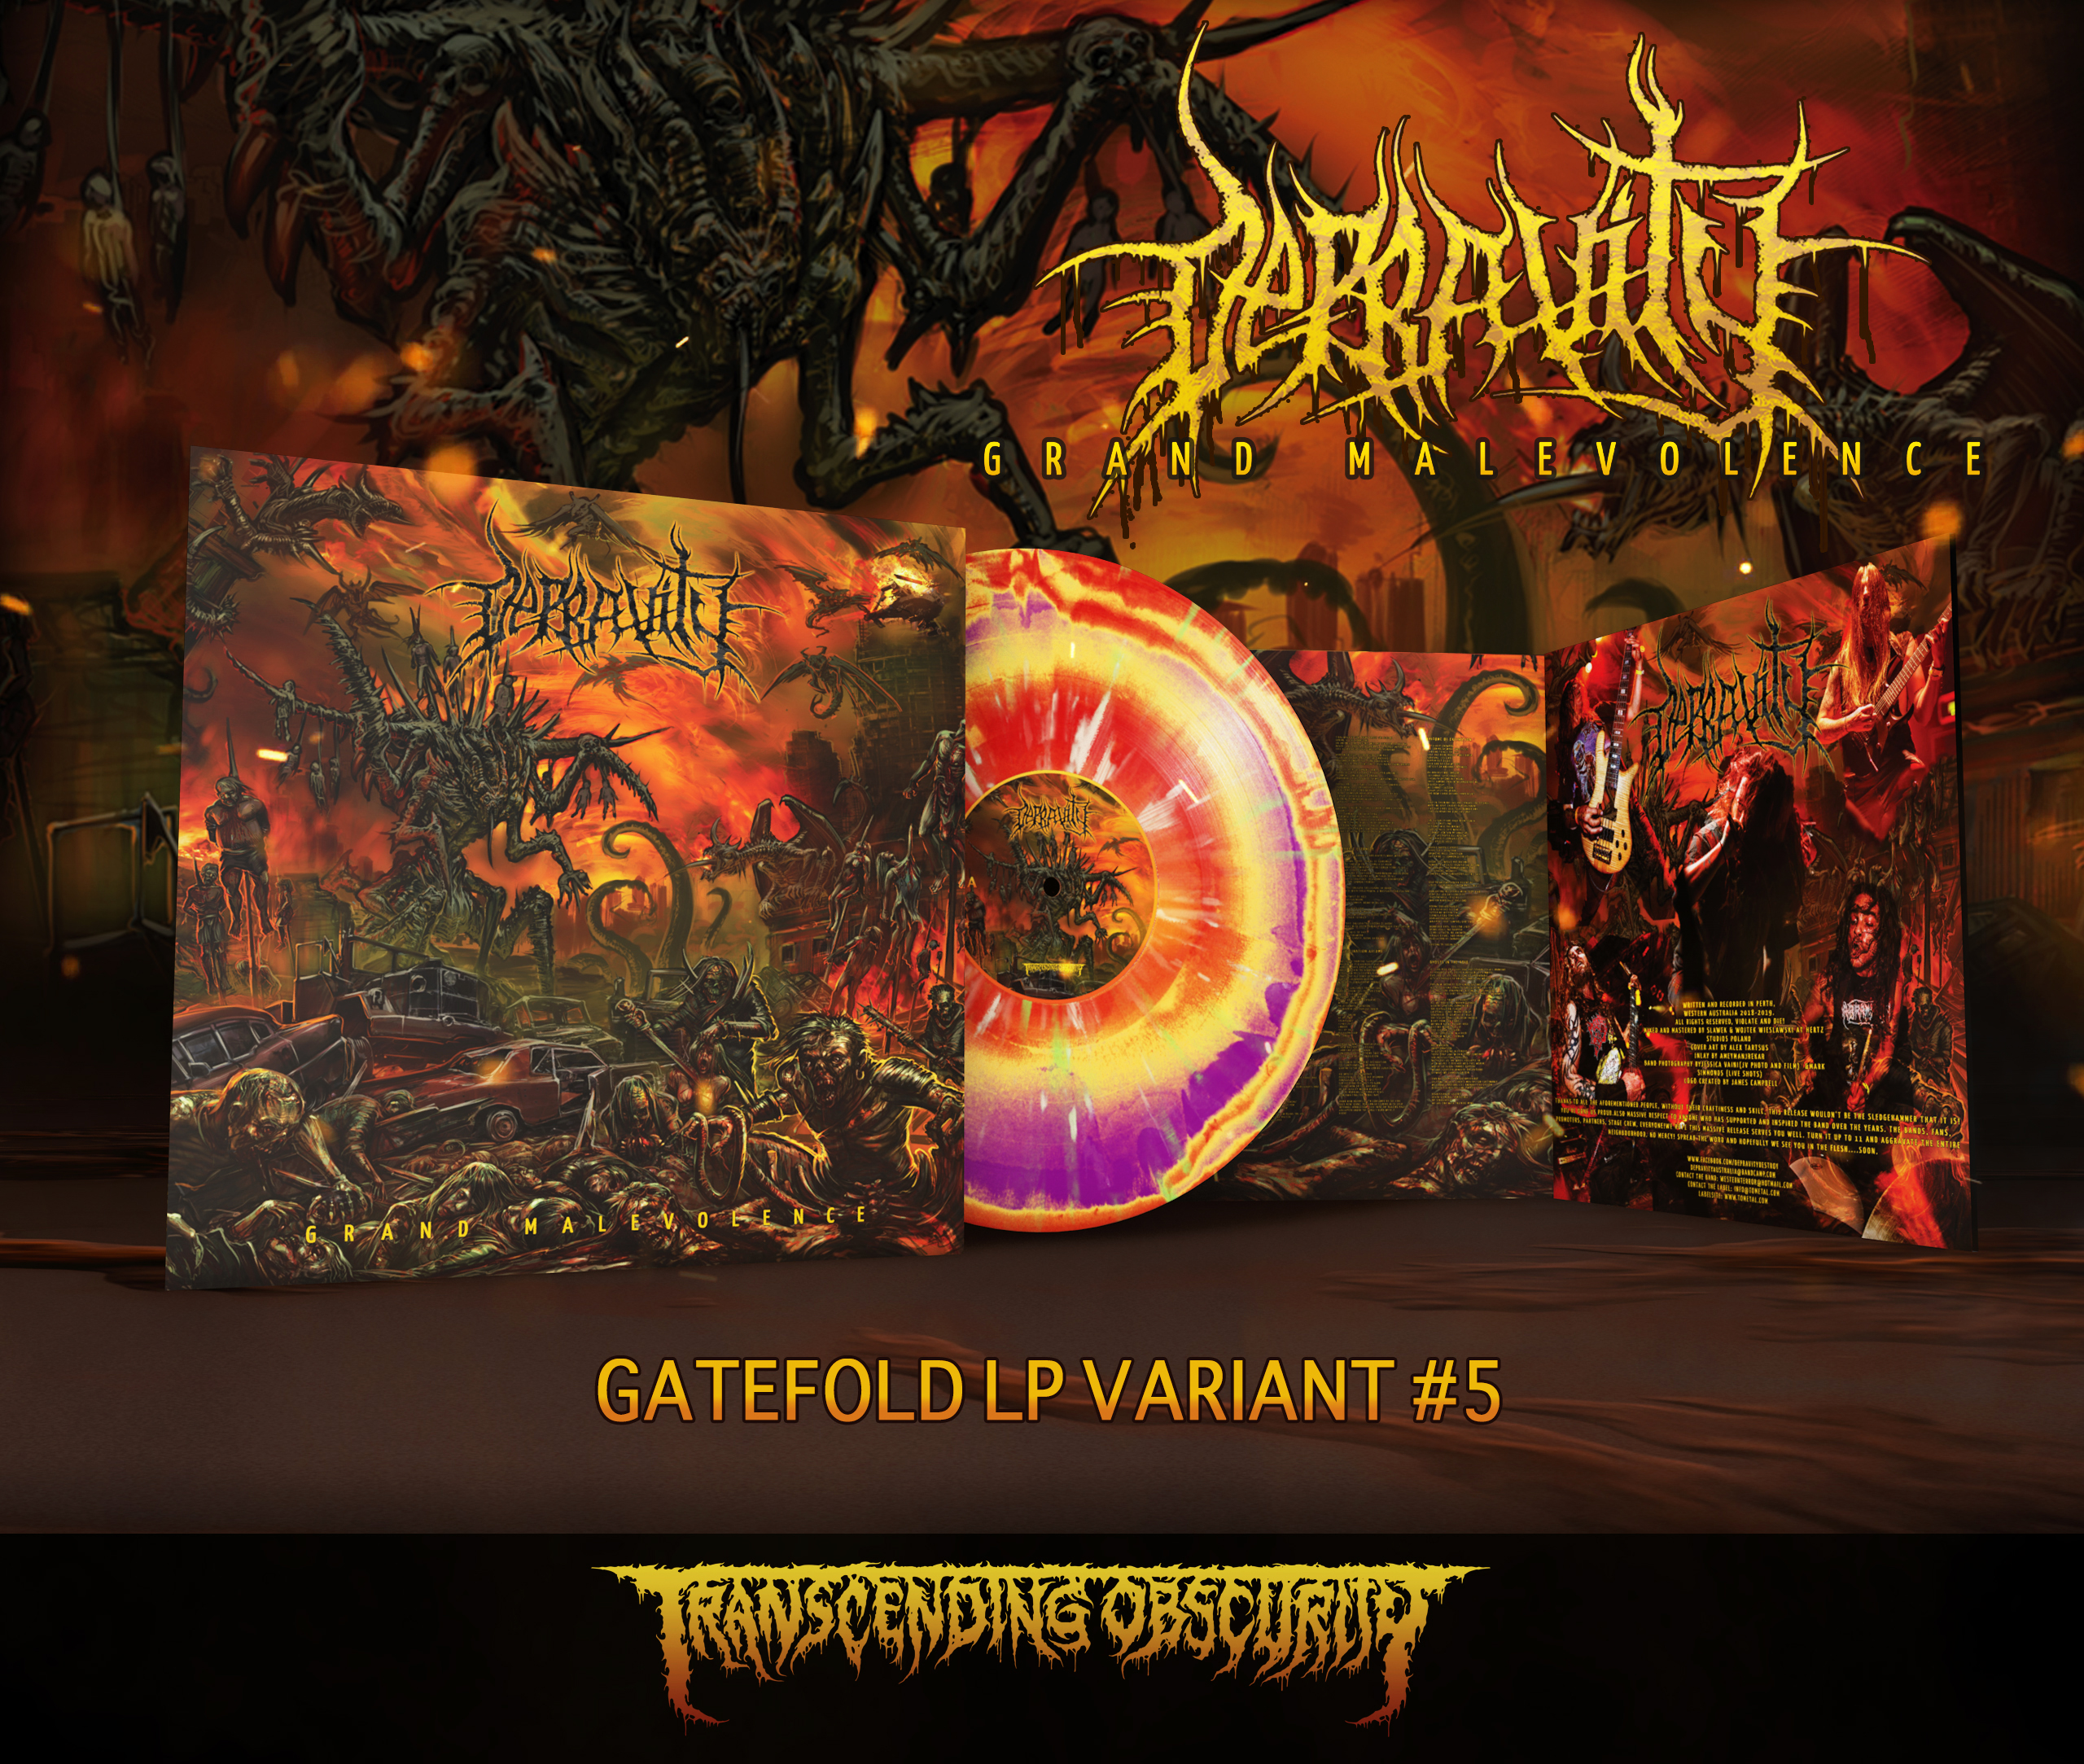 DEPRAVITY - 'Grand Malevolence' Gatefold LP with Metallic Sleeve and UV Embossing